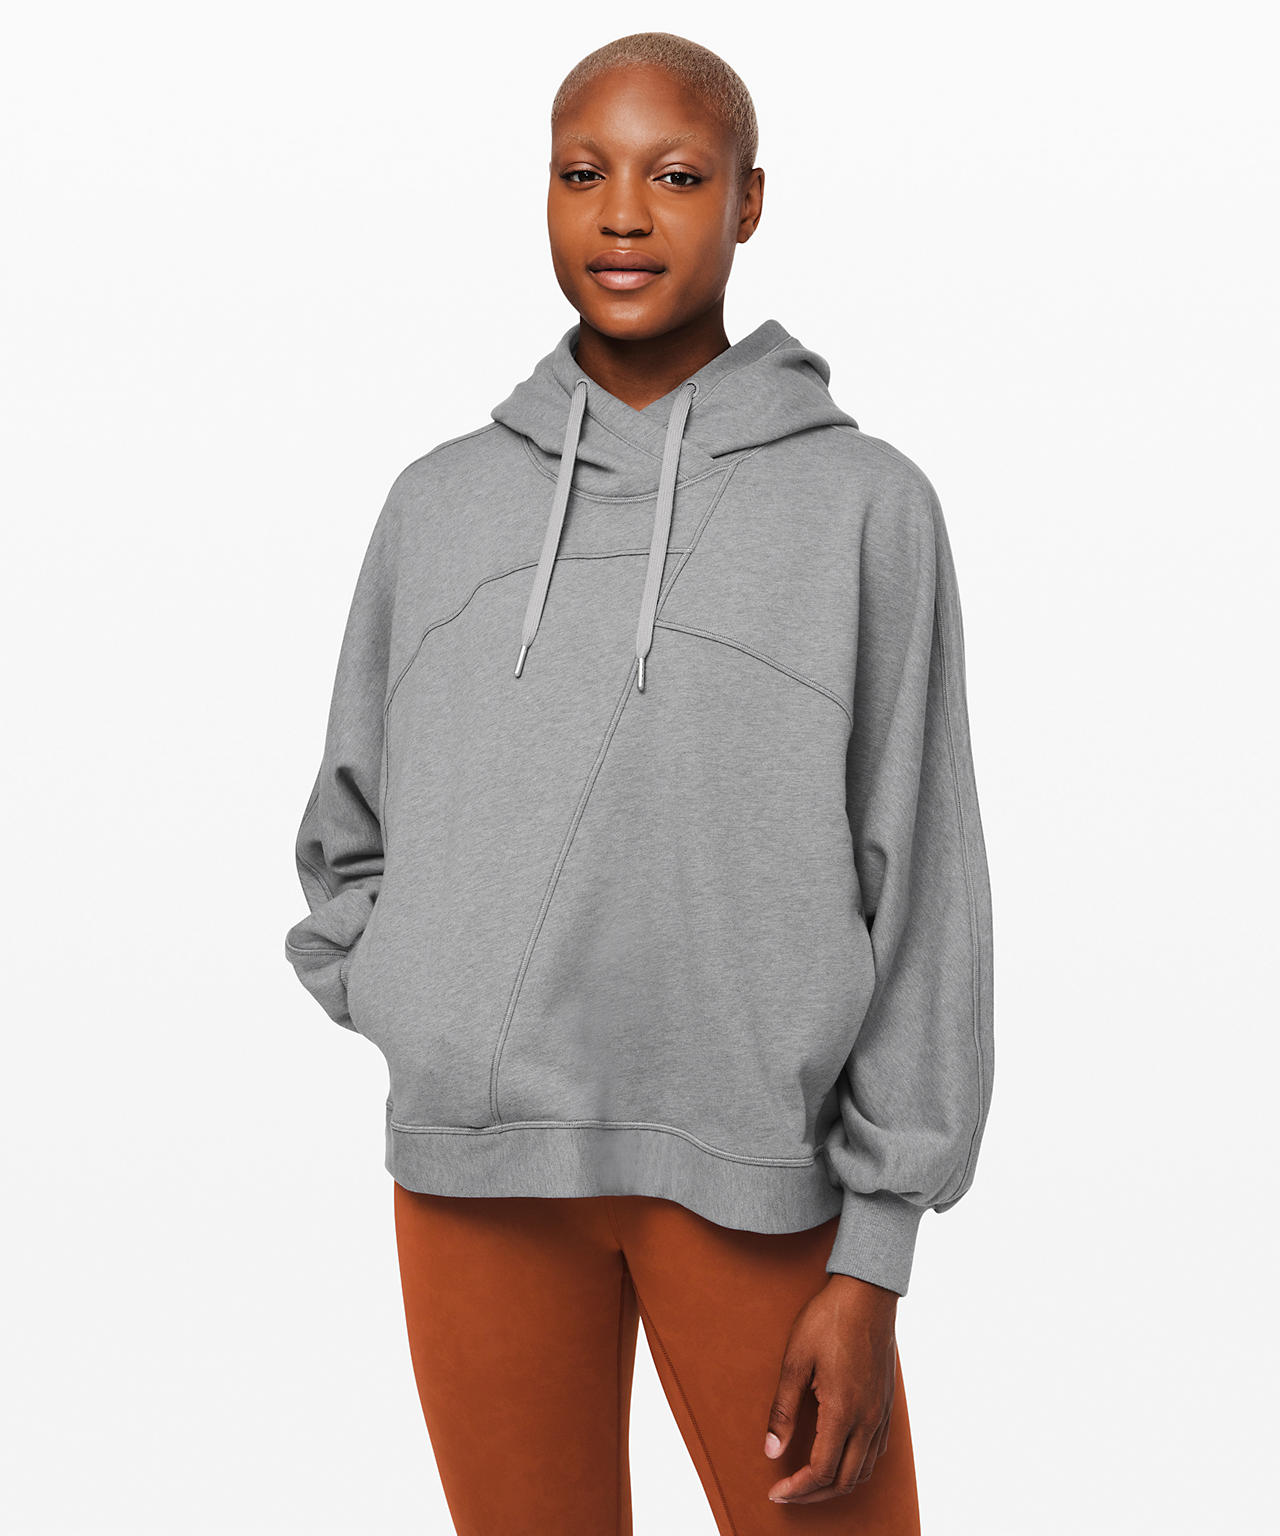 Broken Beats Hoodie, Lululemon Upload